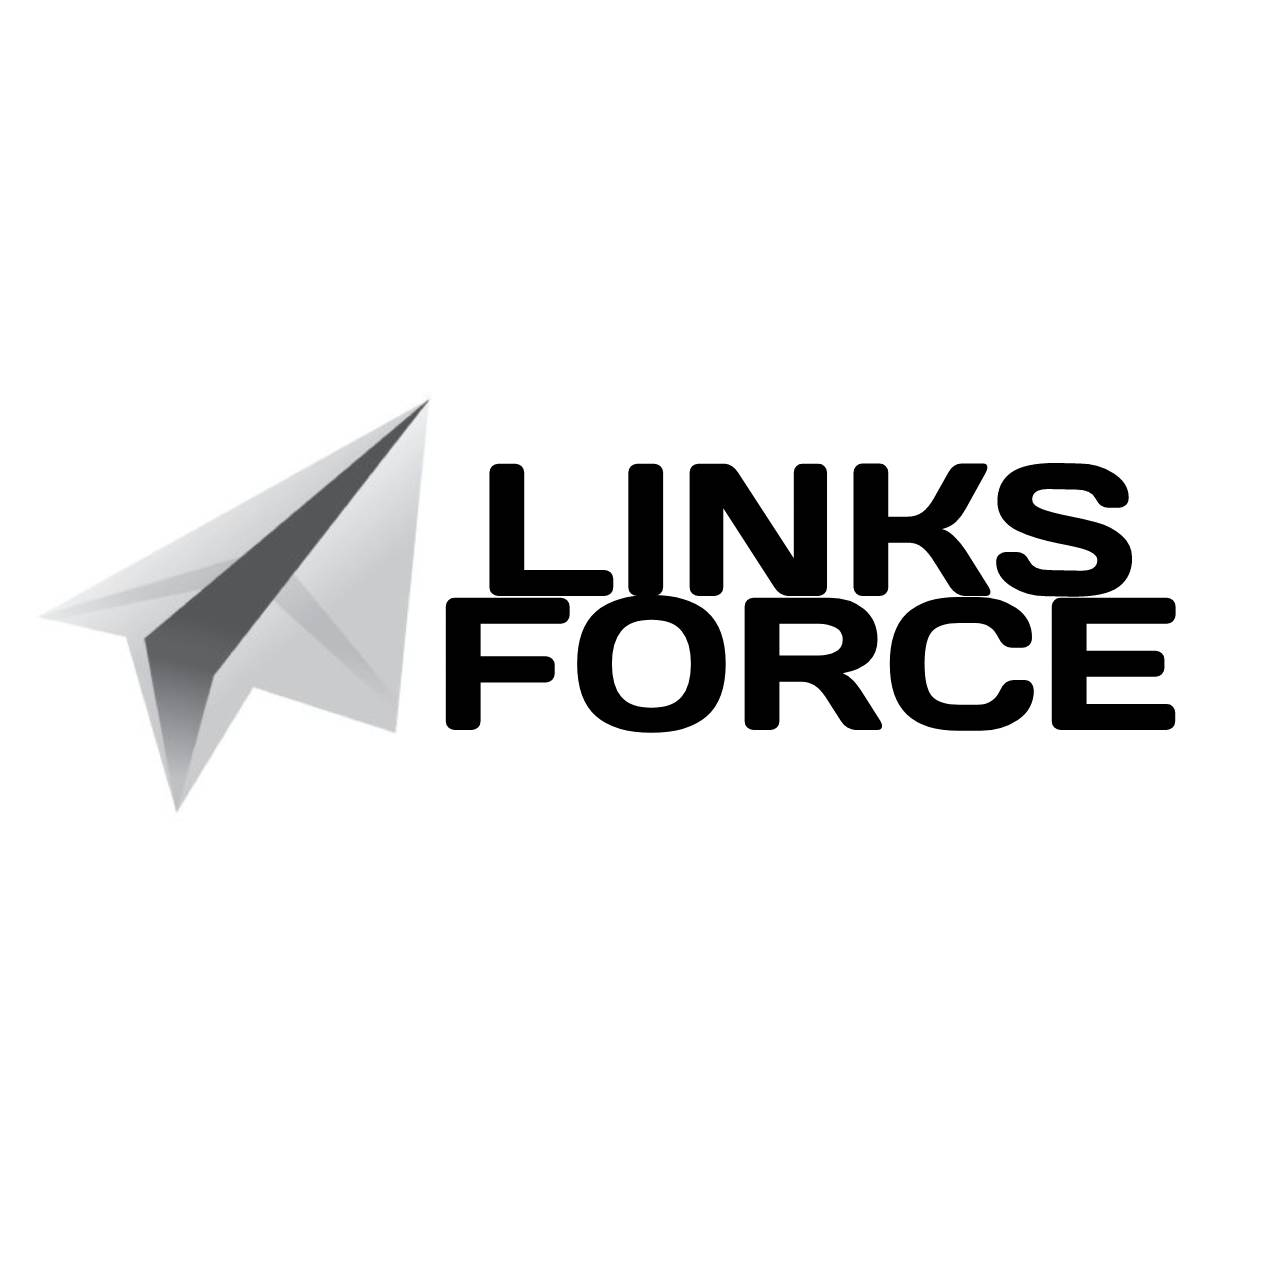 Links Force